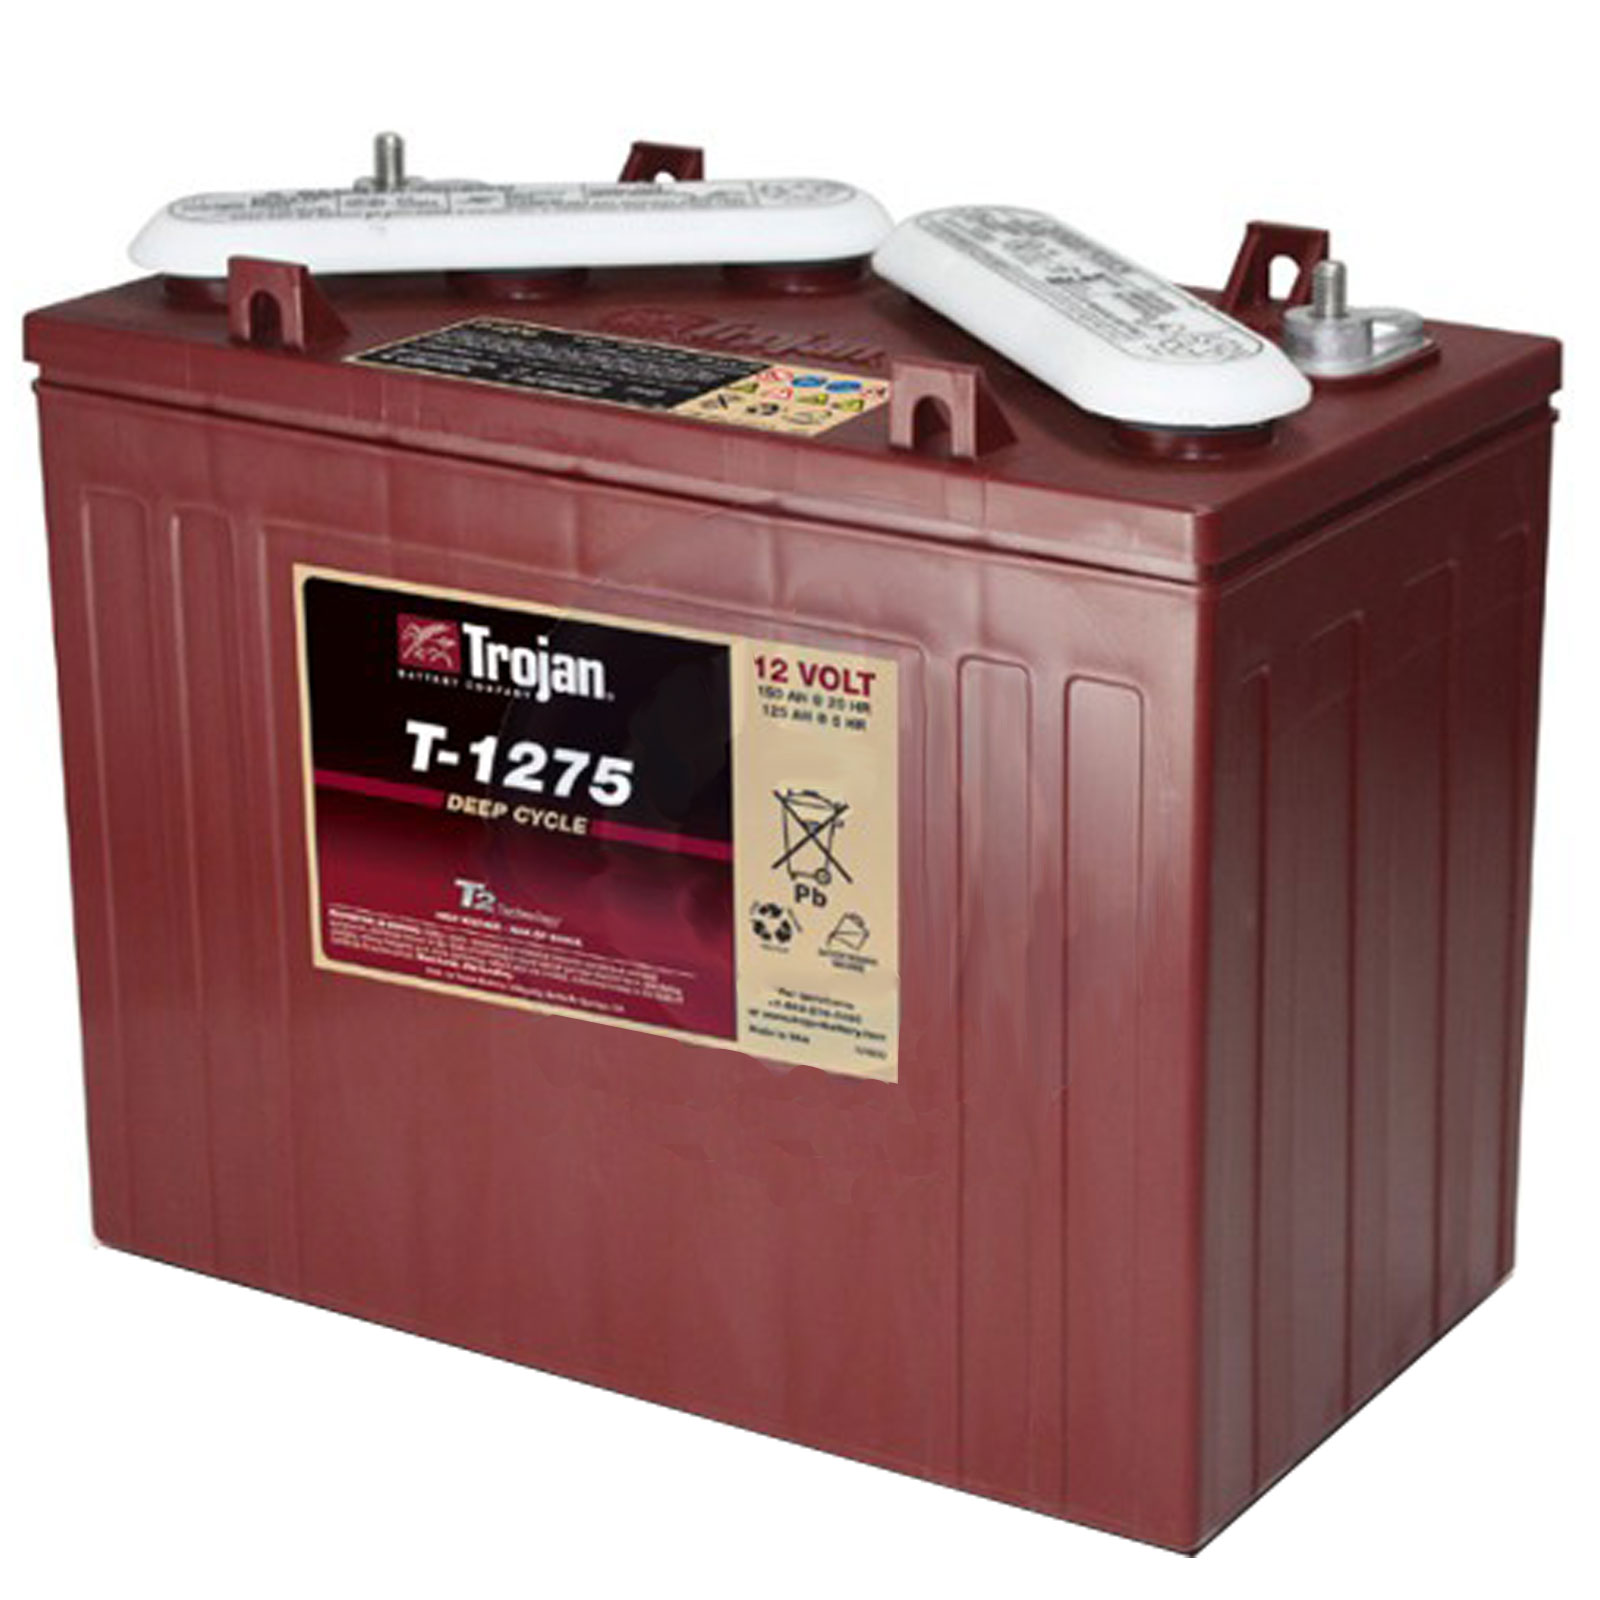 Trojan T 1275 12v 150ah Deep Cycle Flooded Lead Acid Golf